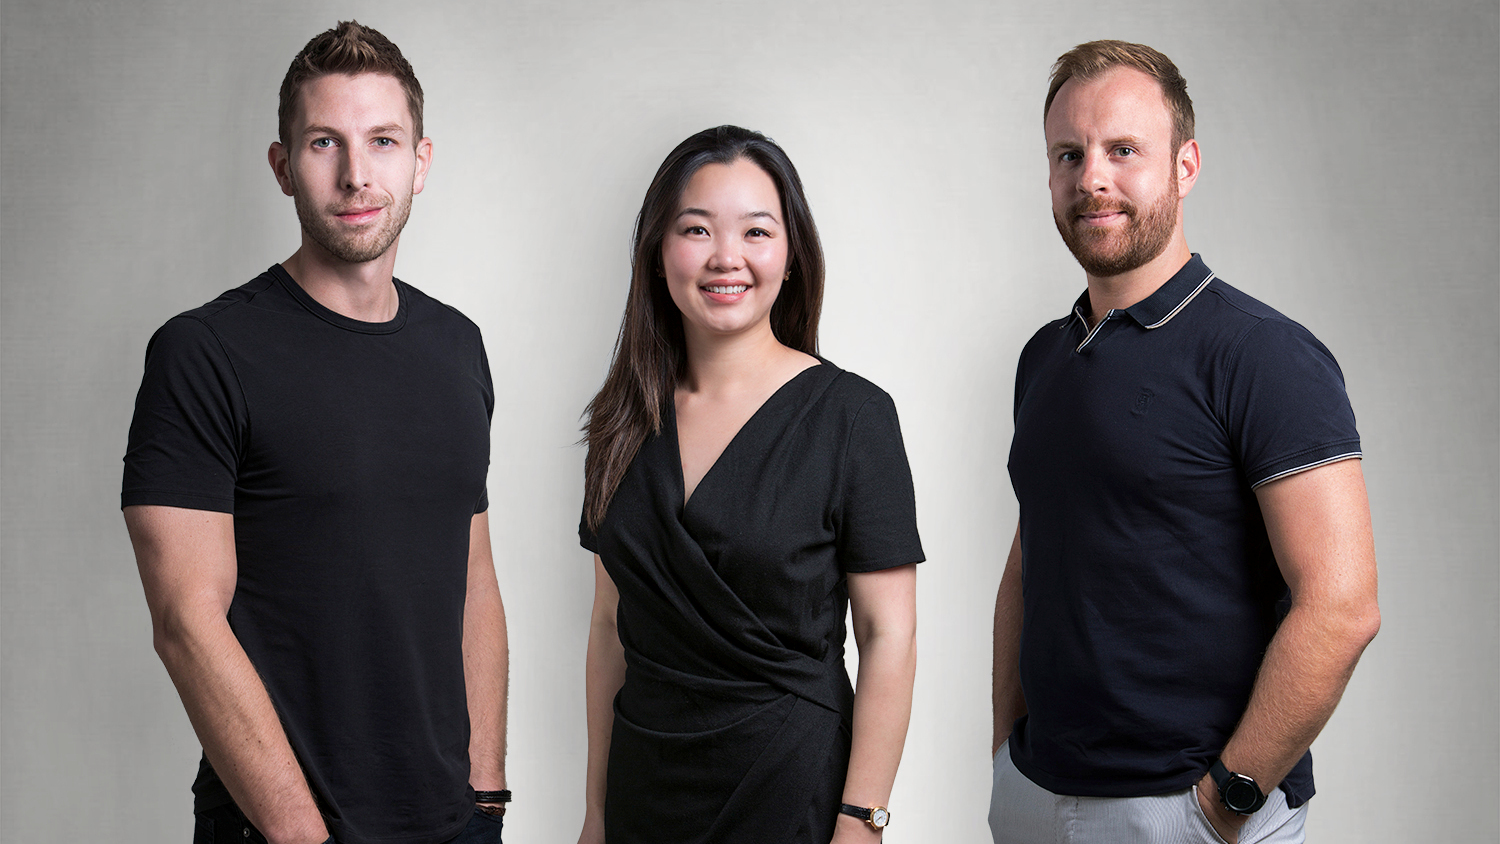 Nomad Homes Co-founders (L-R): Daniel Piehler, Helen Chen, and Damien Drap